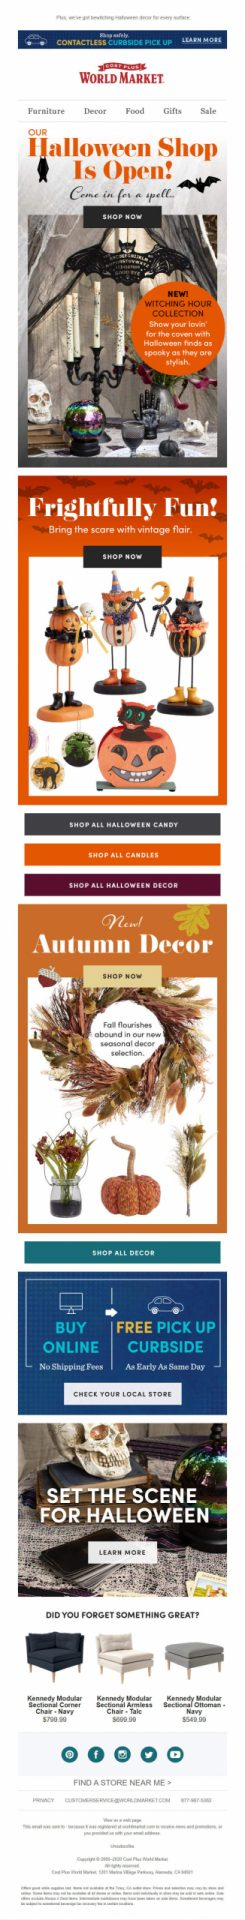 world market fall and halloween decorations